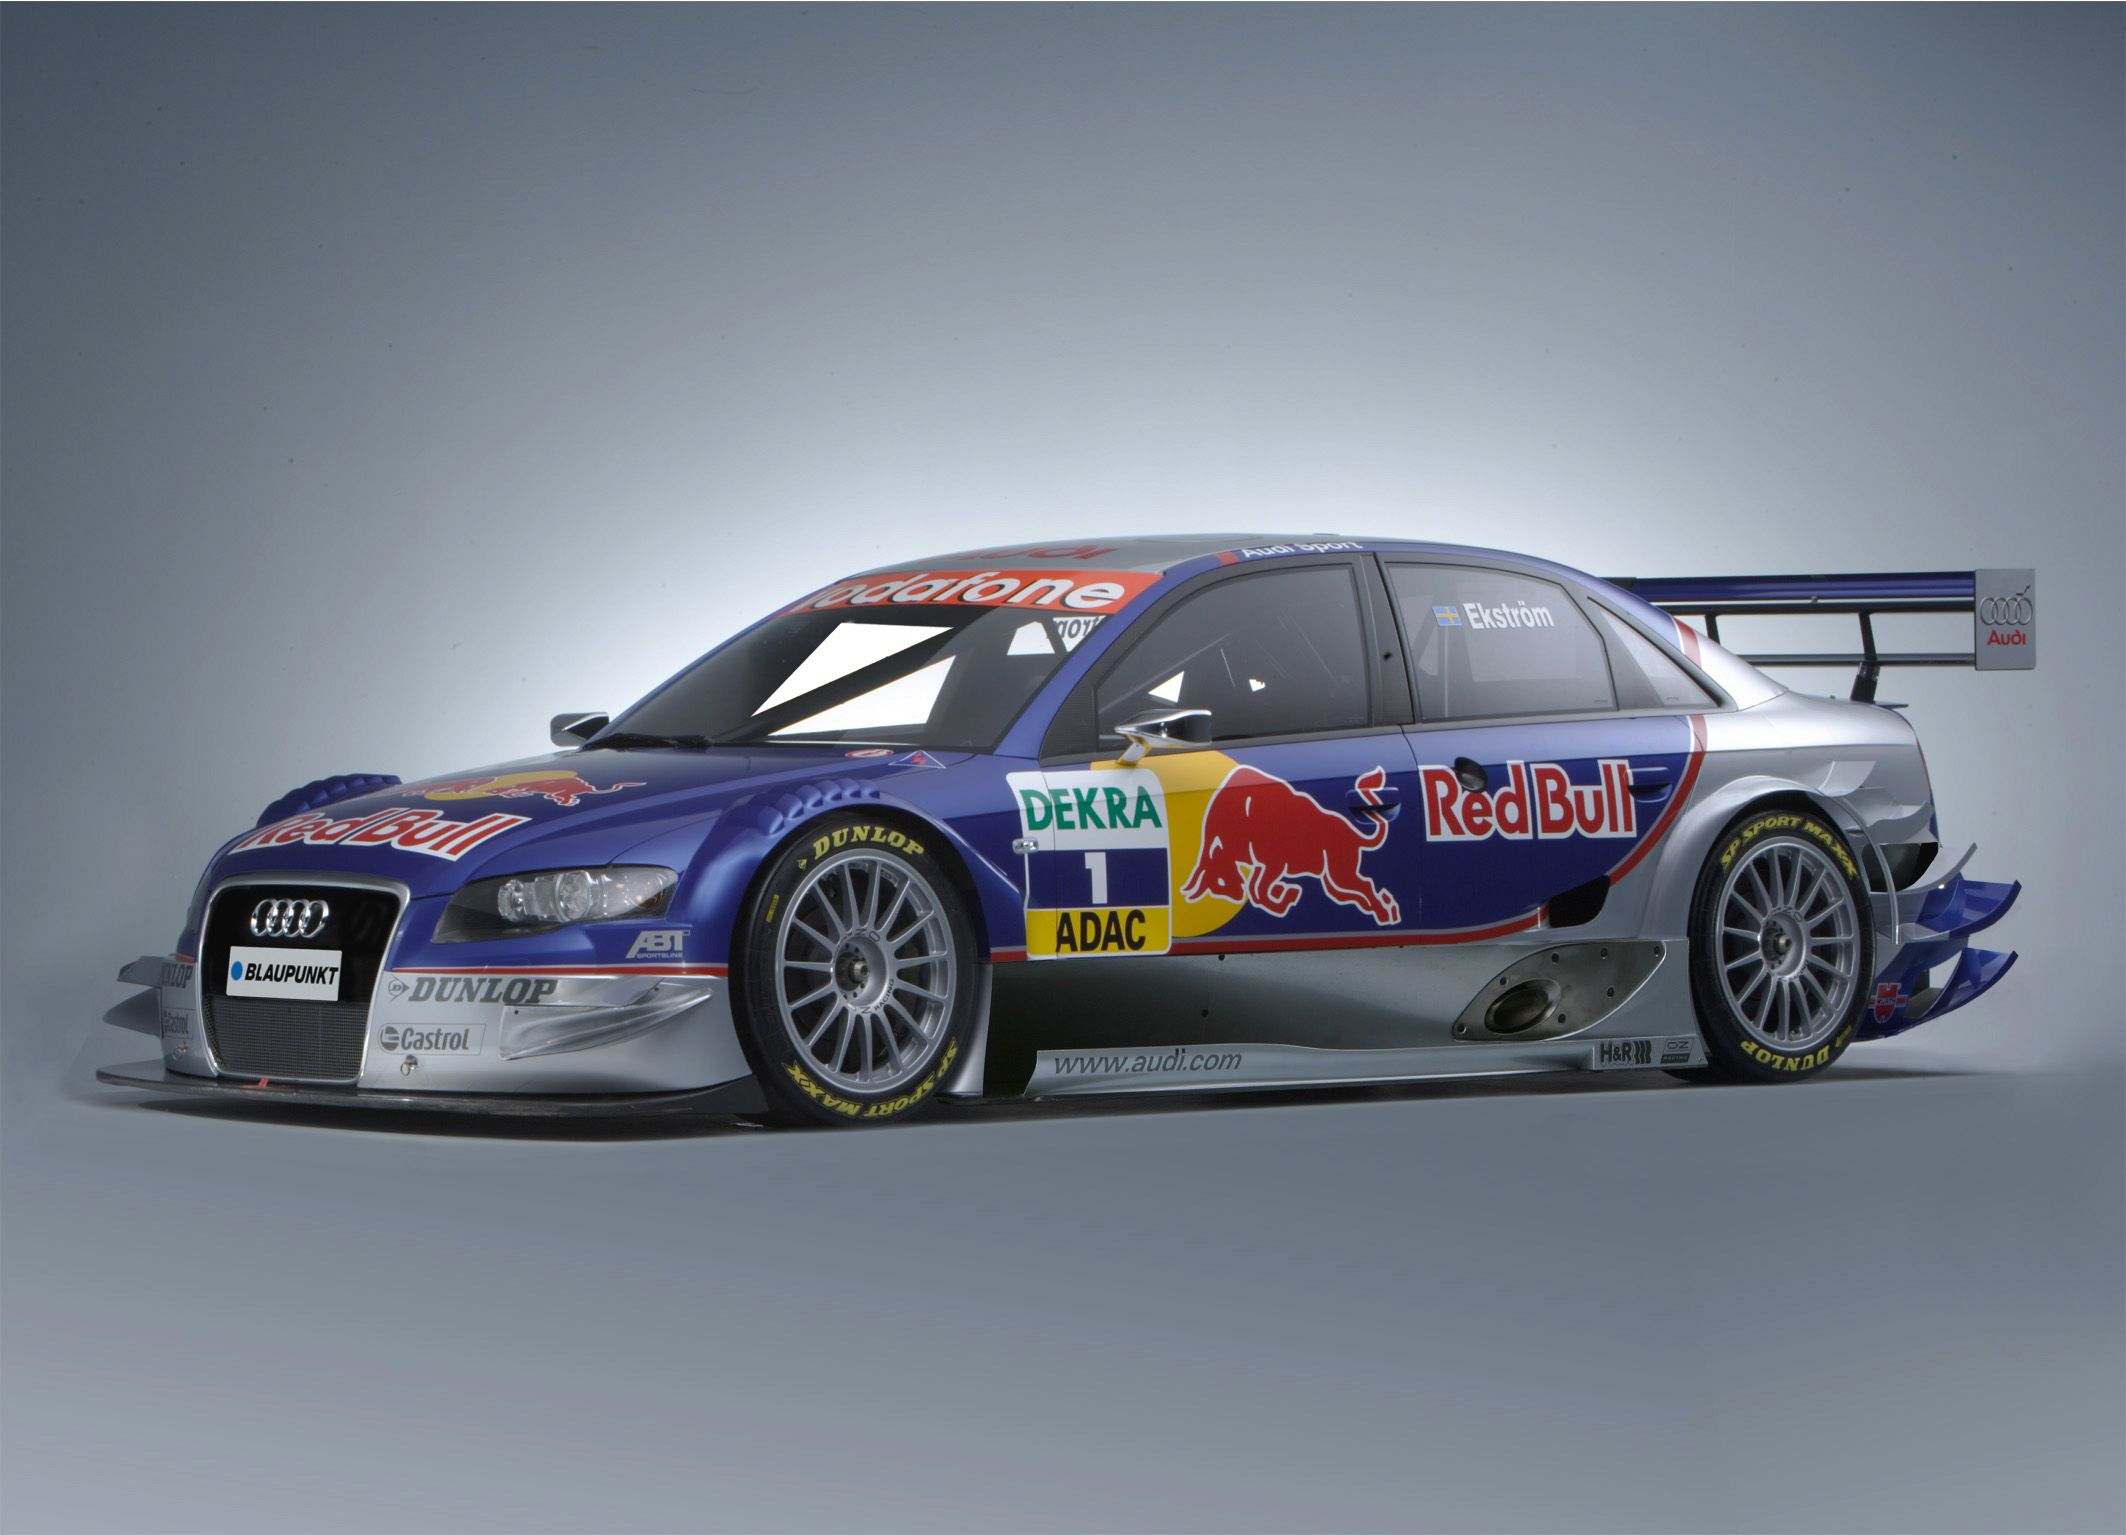 Red Bull Audi A4 DTM Touring Cars